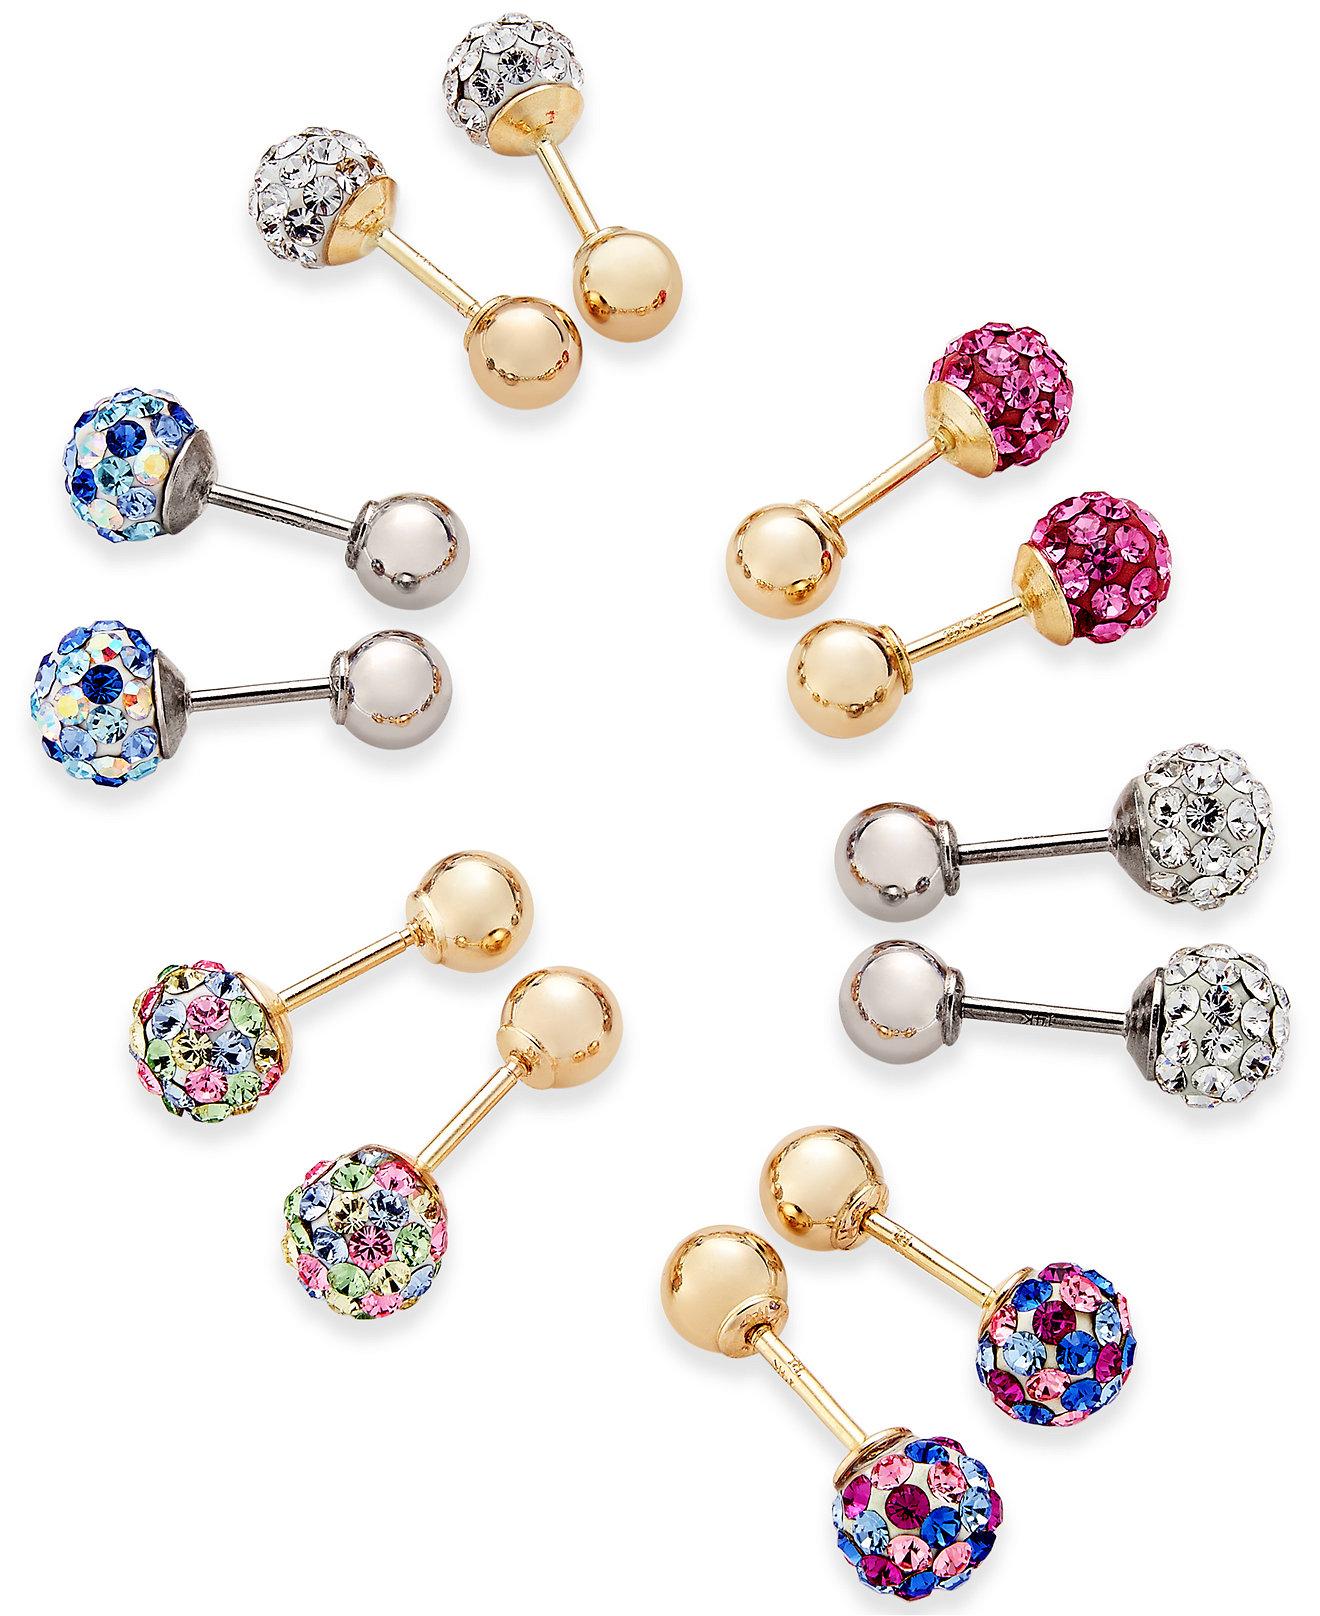 Children's Crystal Ball Reversible Stud Earrings Collection In 14k Gold And  White Gold